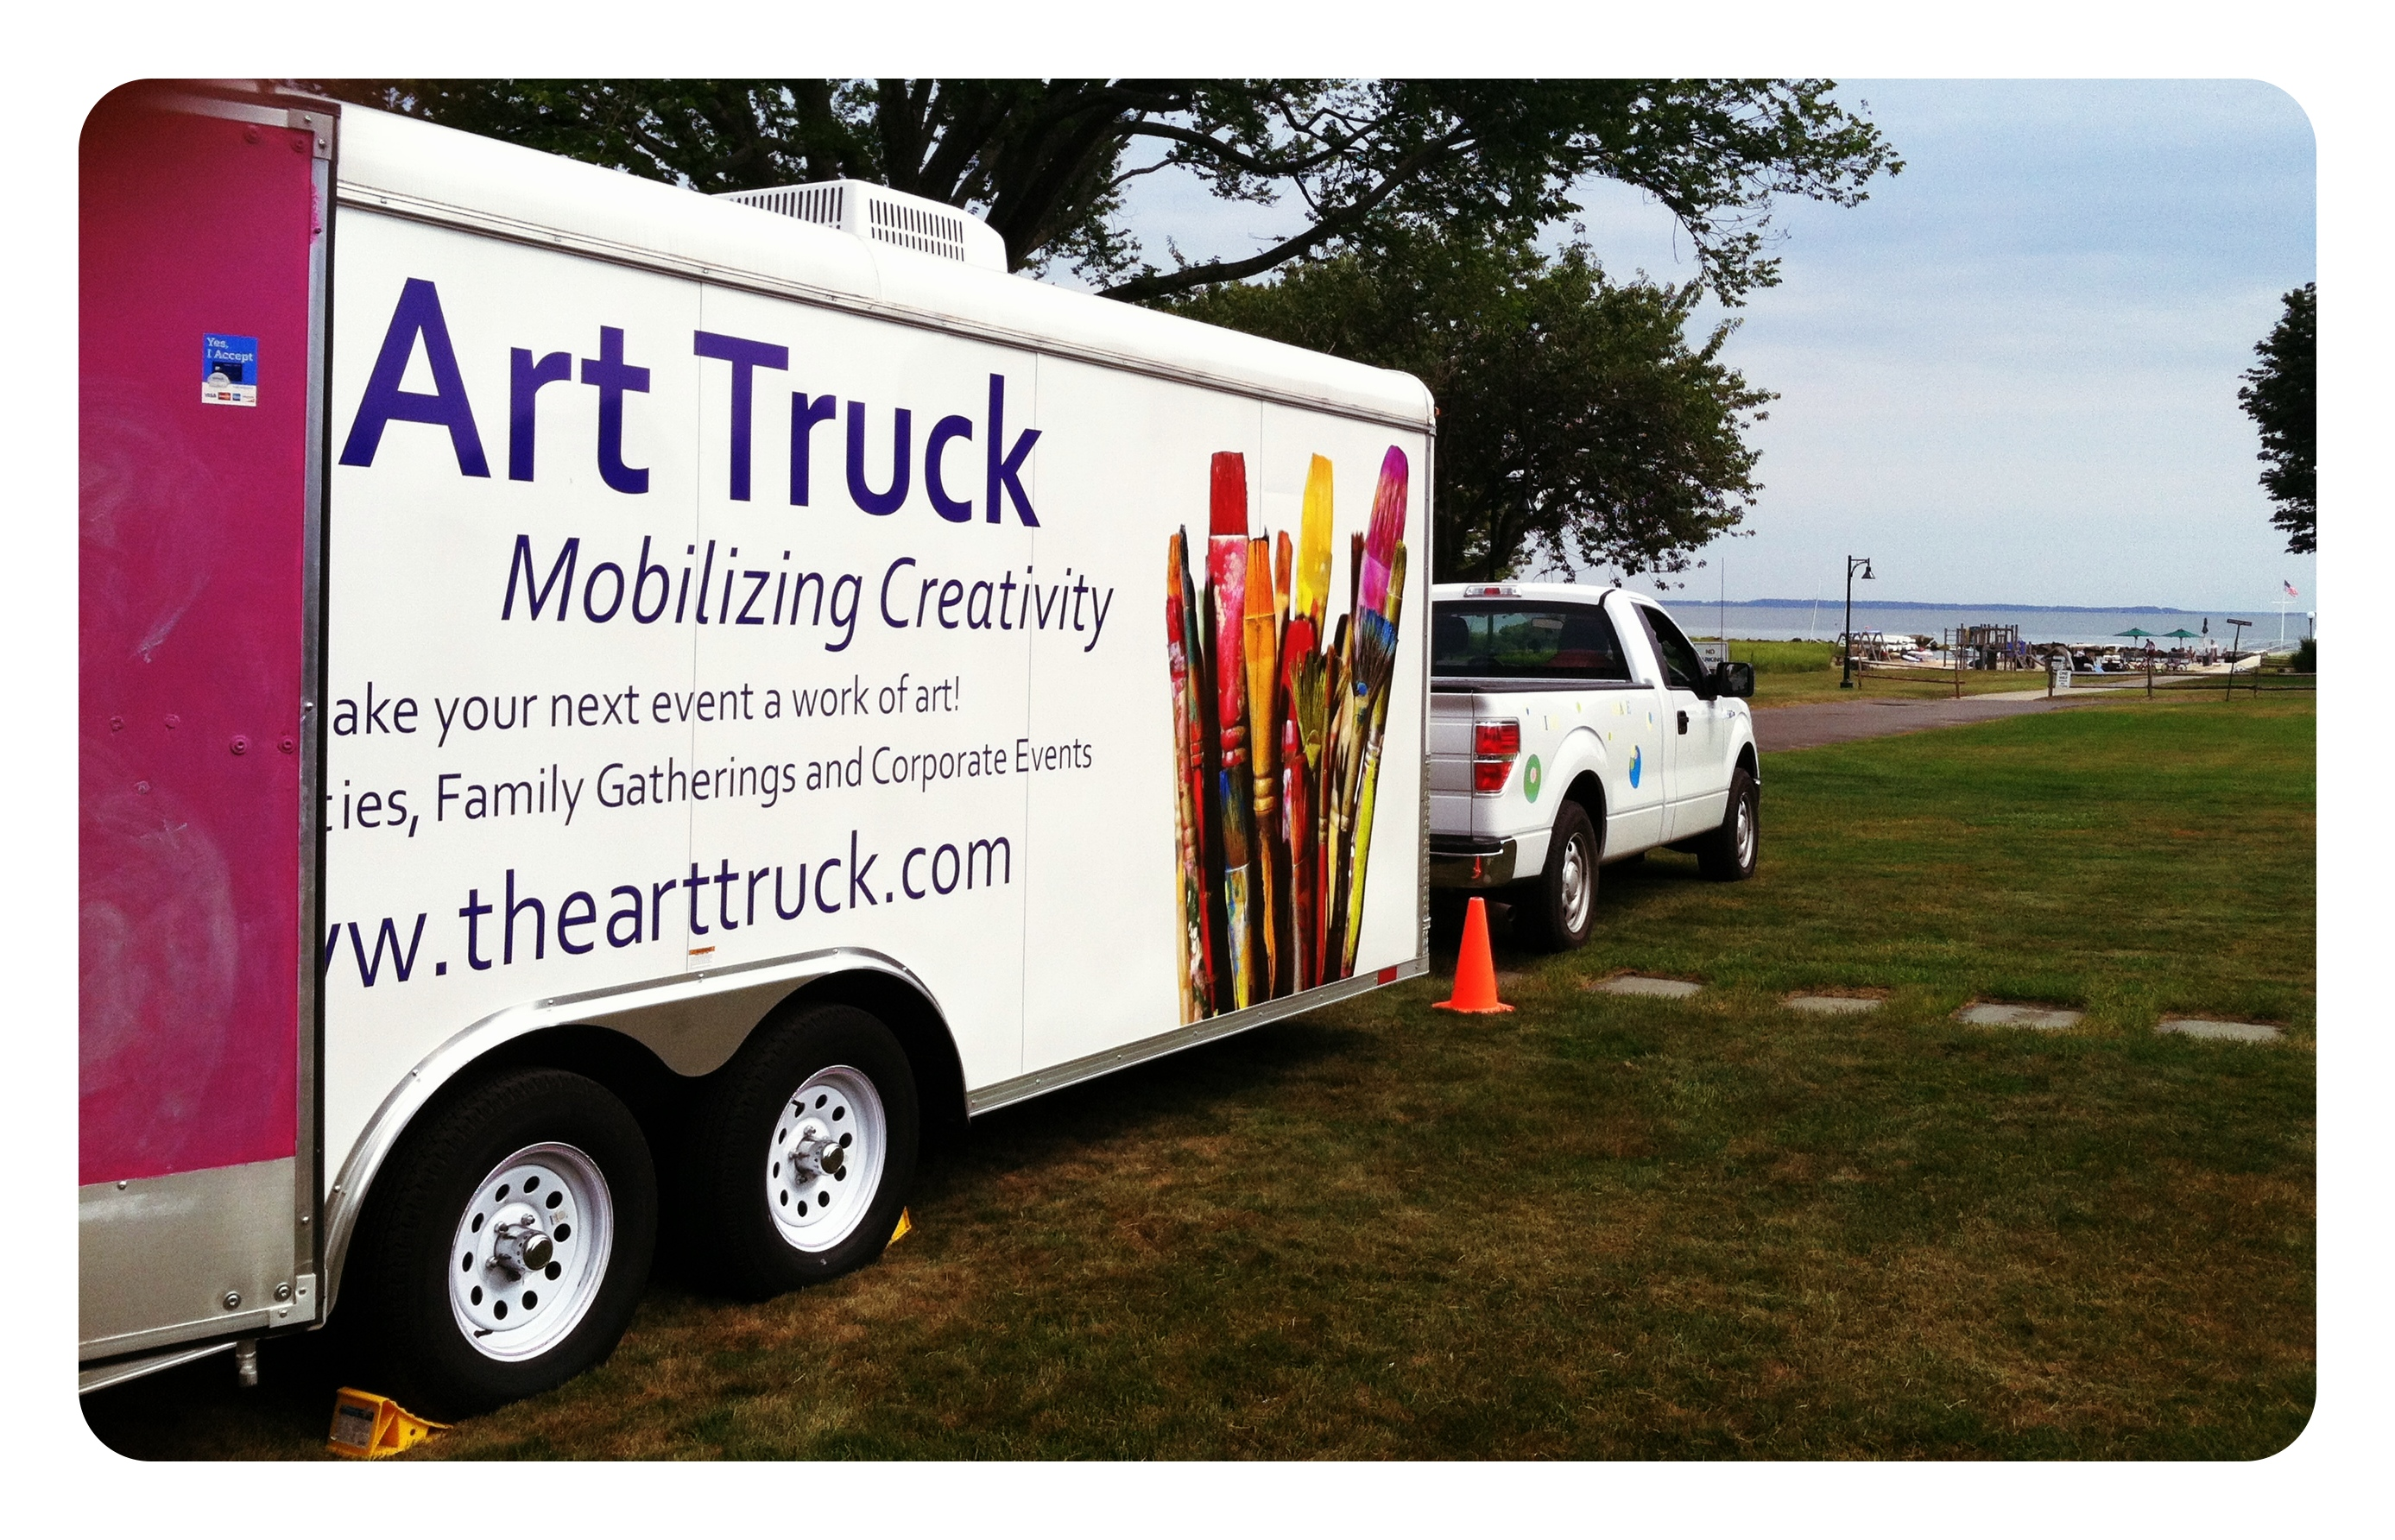 The Art Truck Mobilizing Creativity